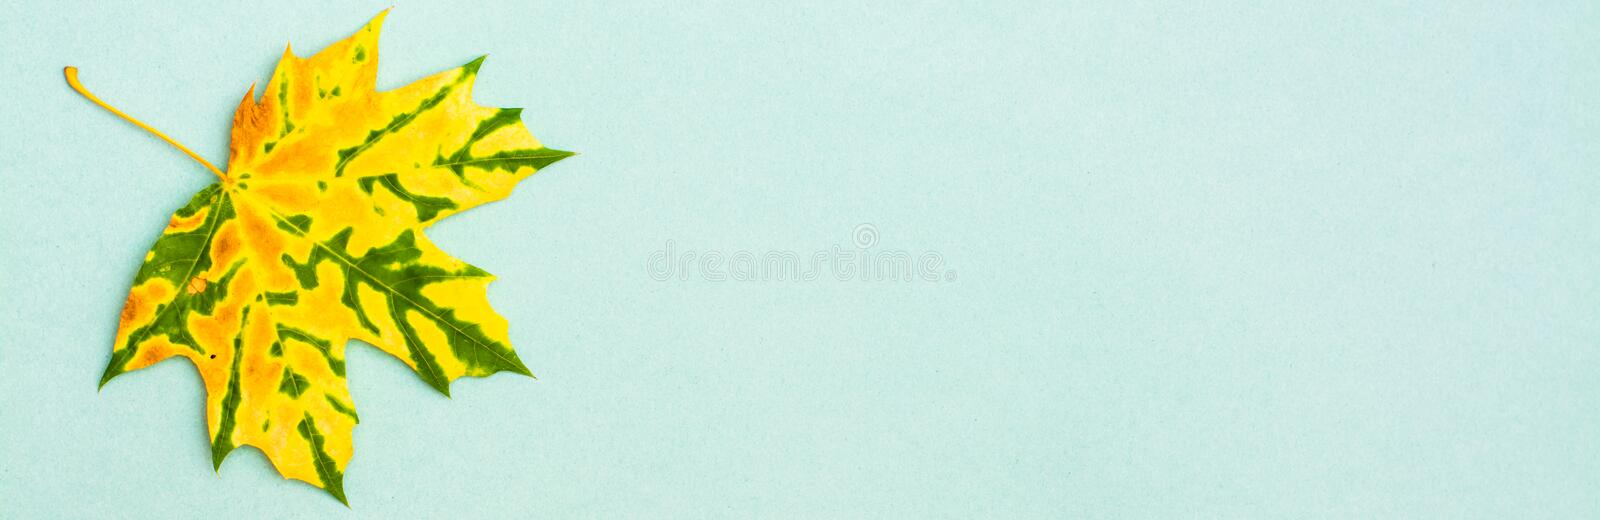 A beautiful yellow-green mottled fallen maple leaf. On a cardboard background. Copy space. Web banner royalty free stock photo